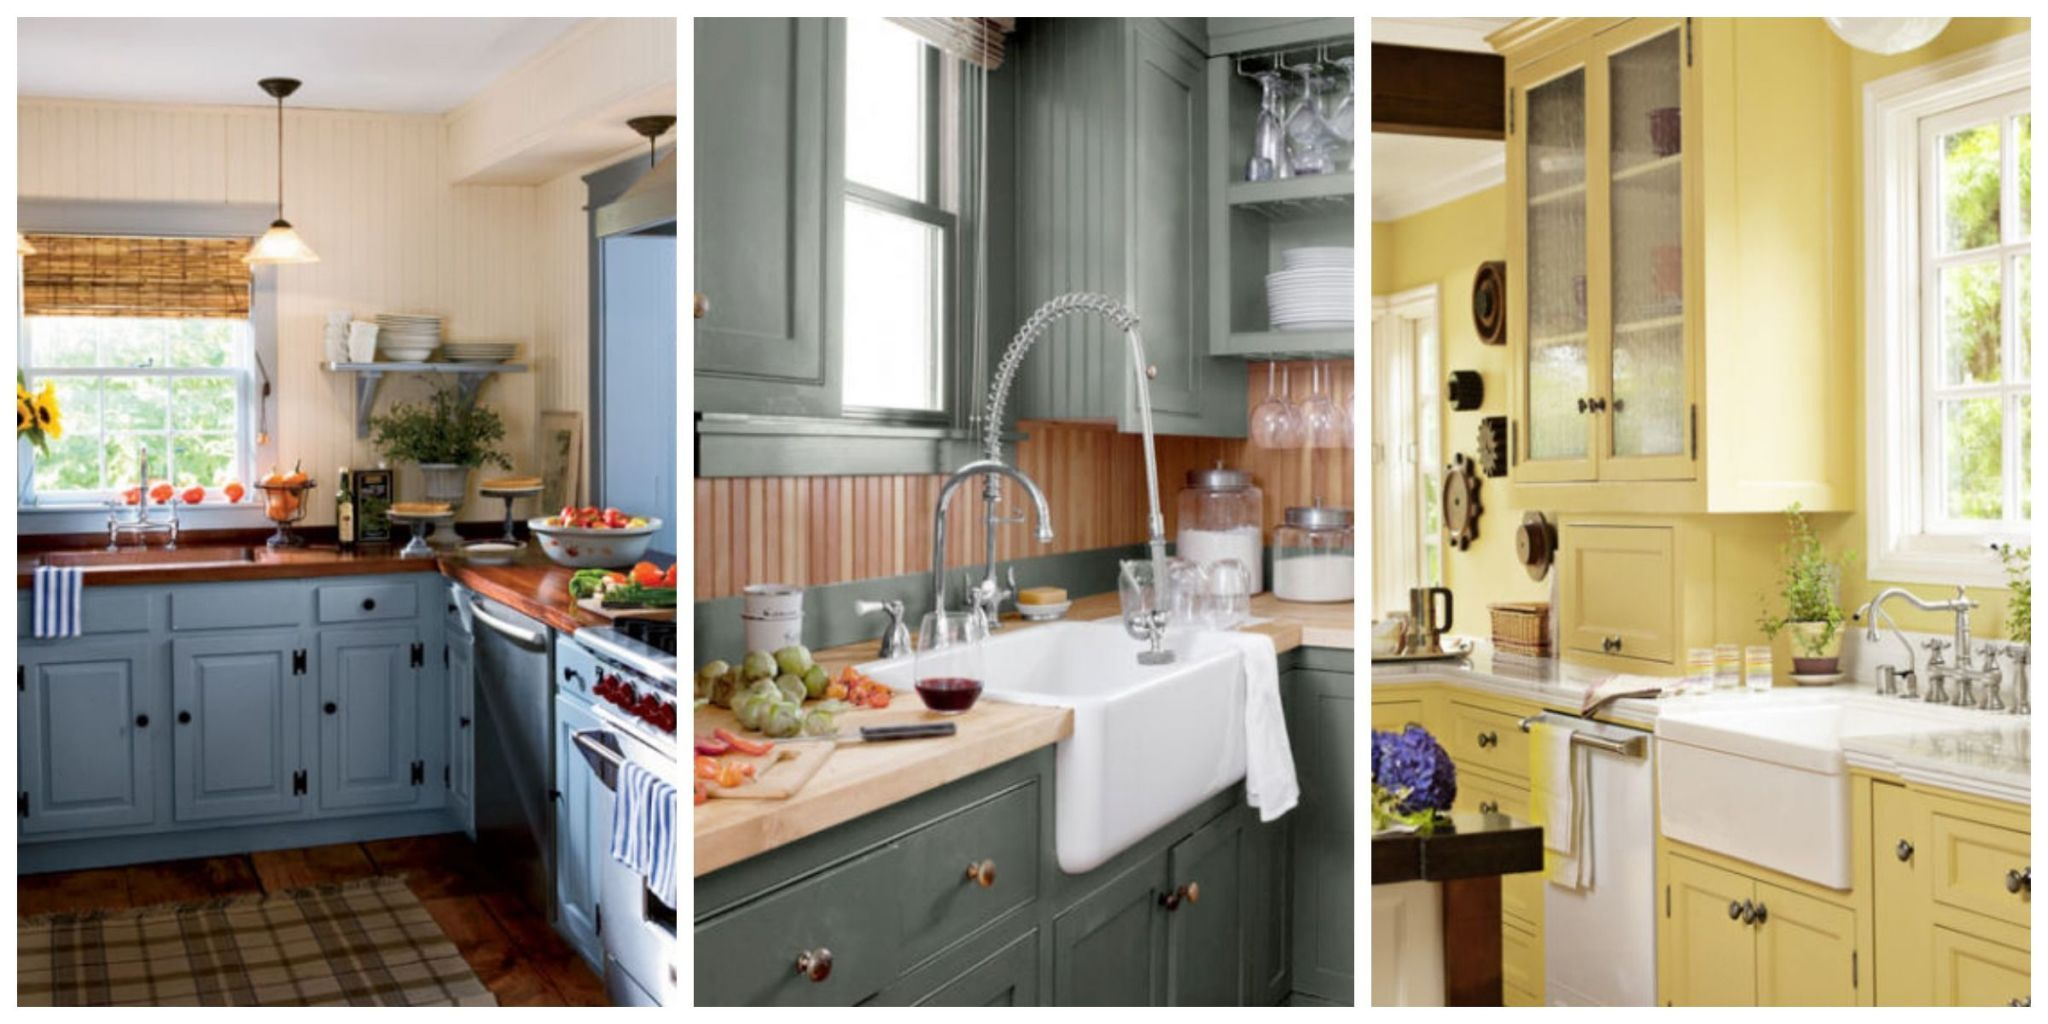 Delightful Create A Beautiful And Colorful Kitchen With These Paint And Decorating  Ideas.